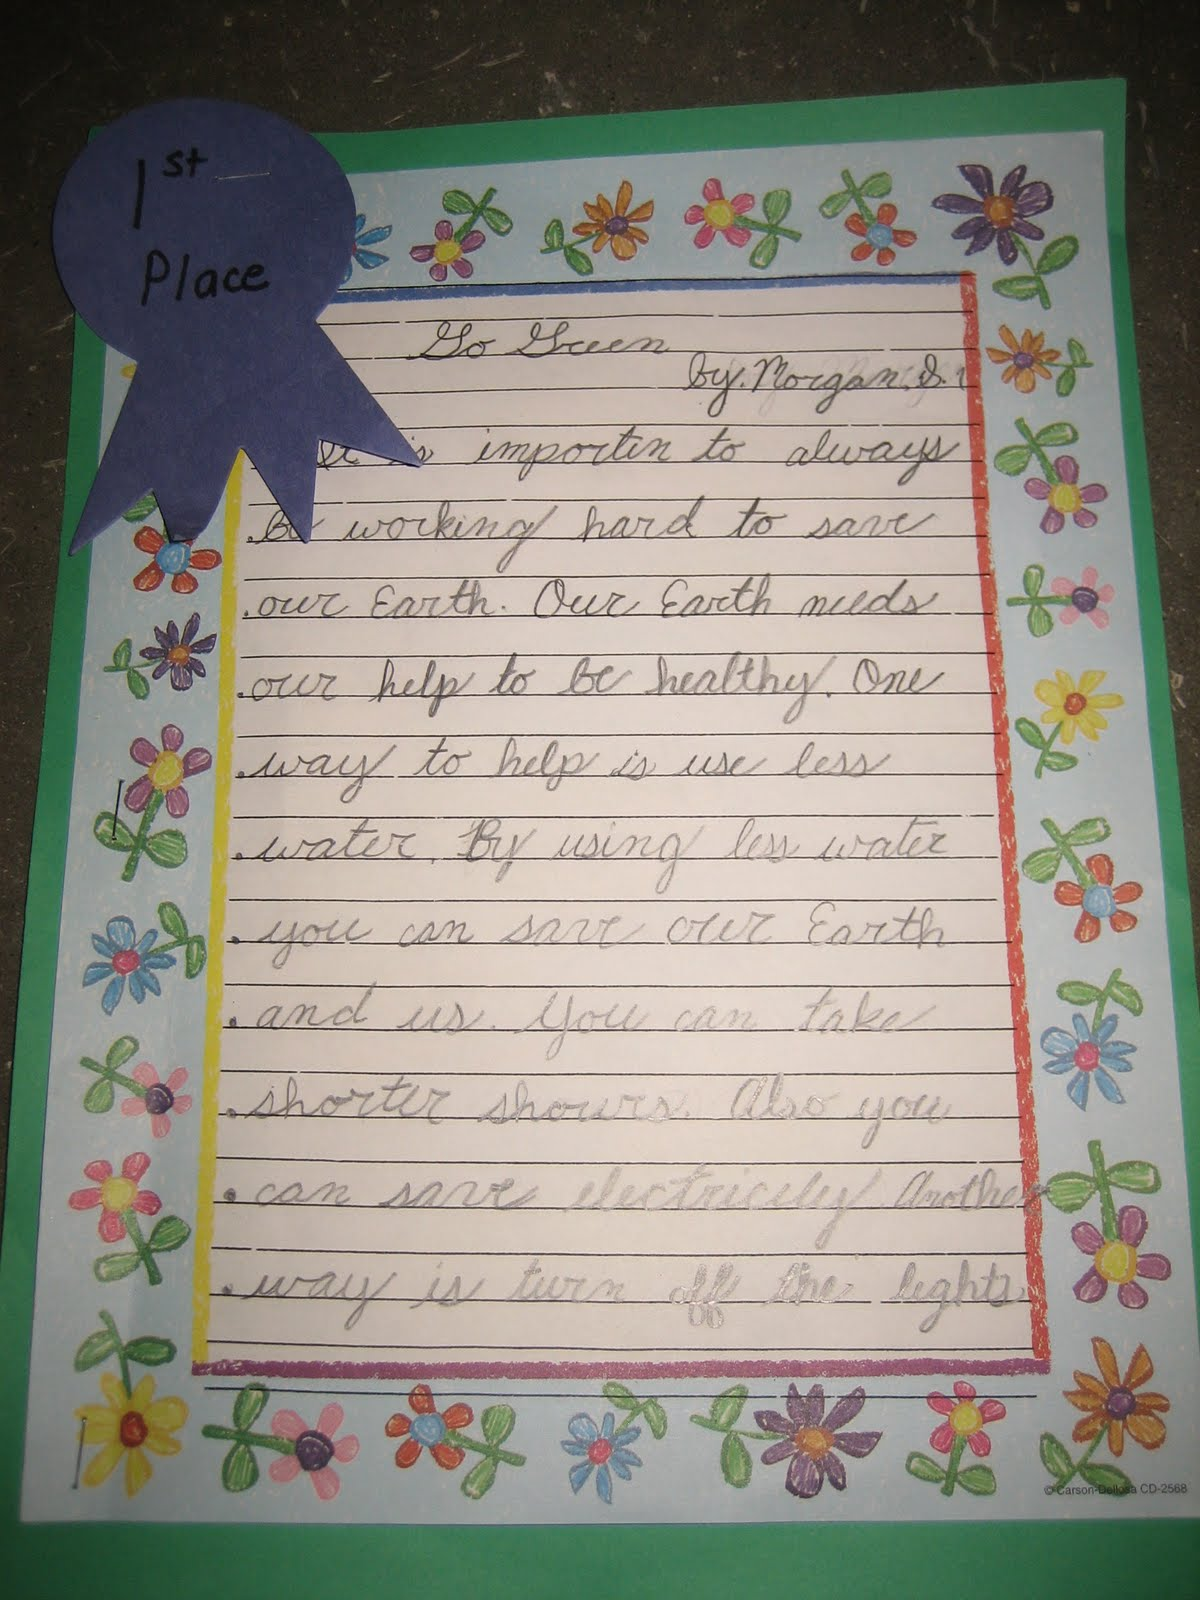 My turn essay contest 2010